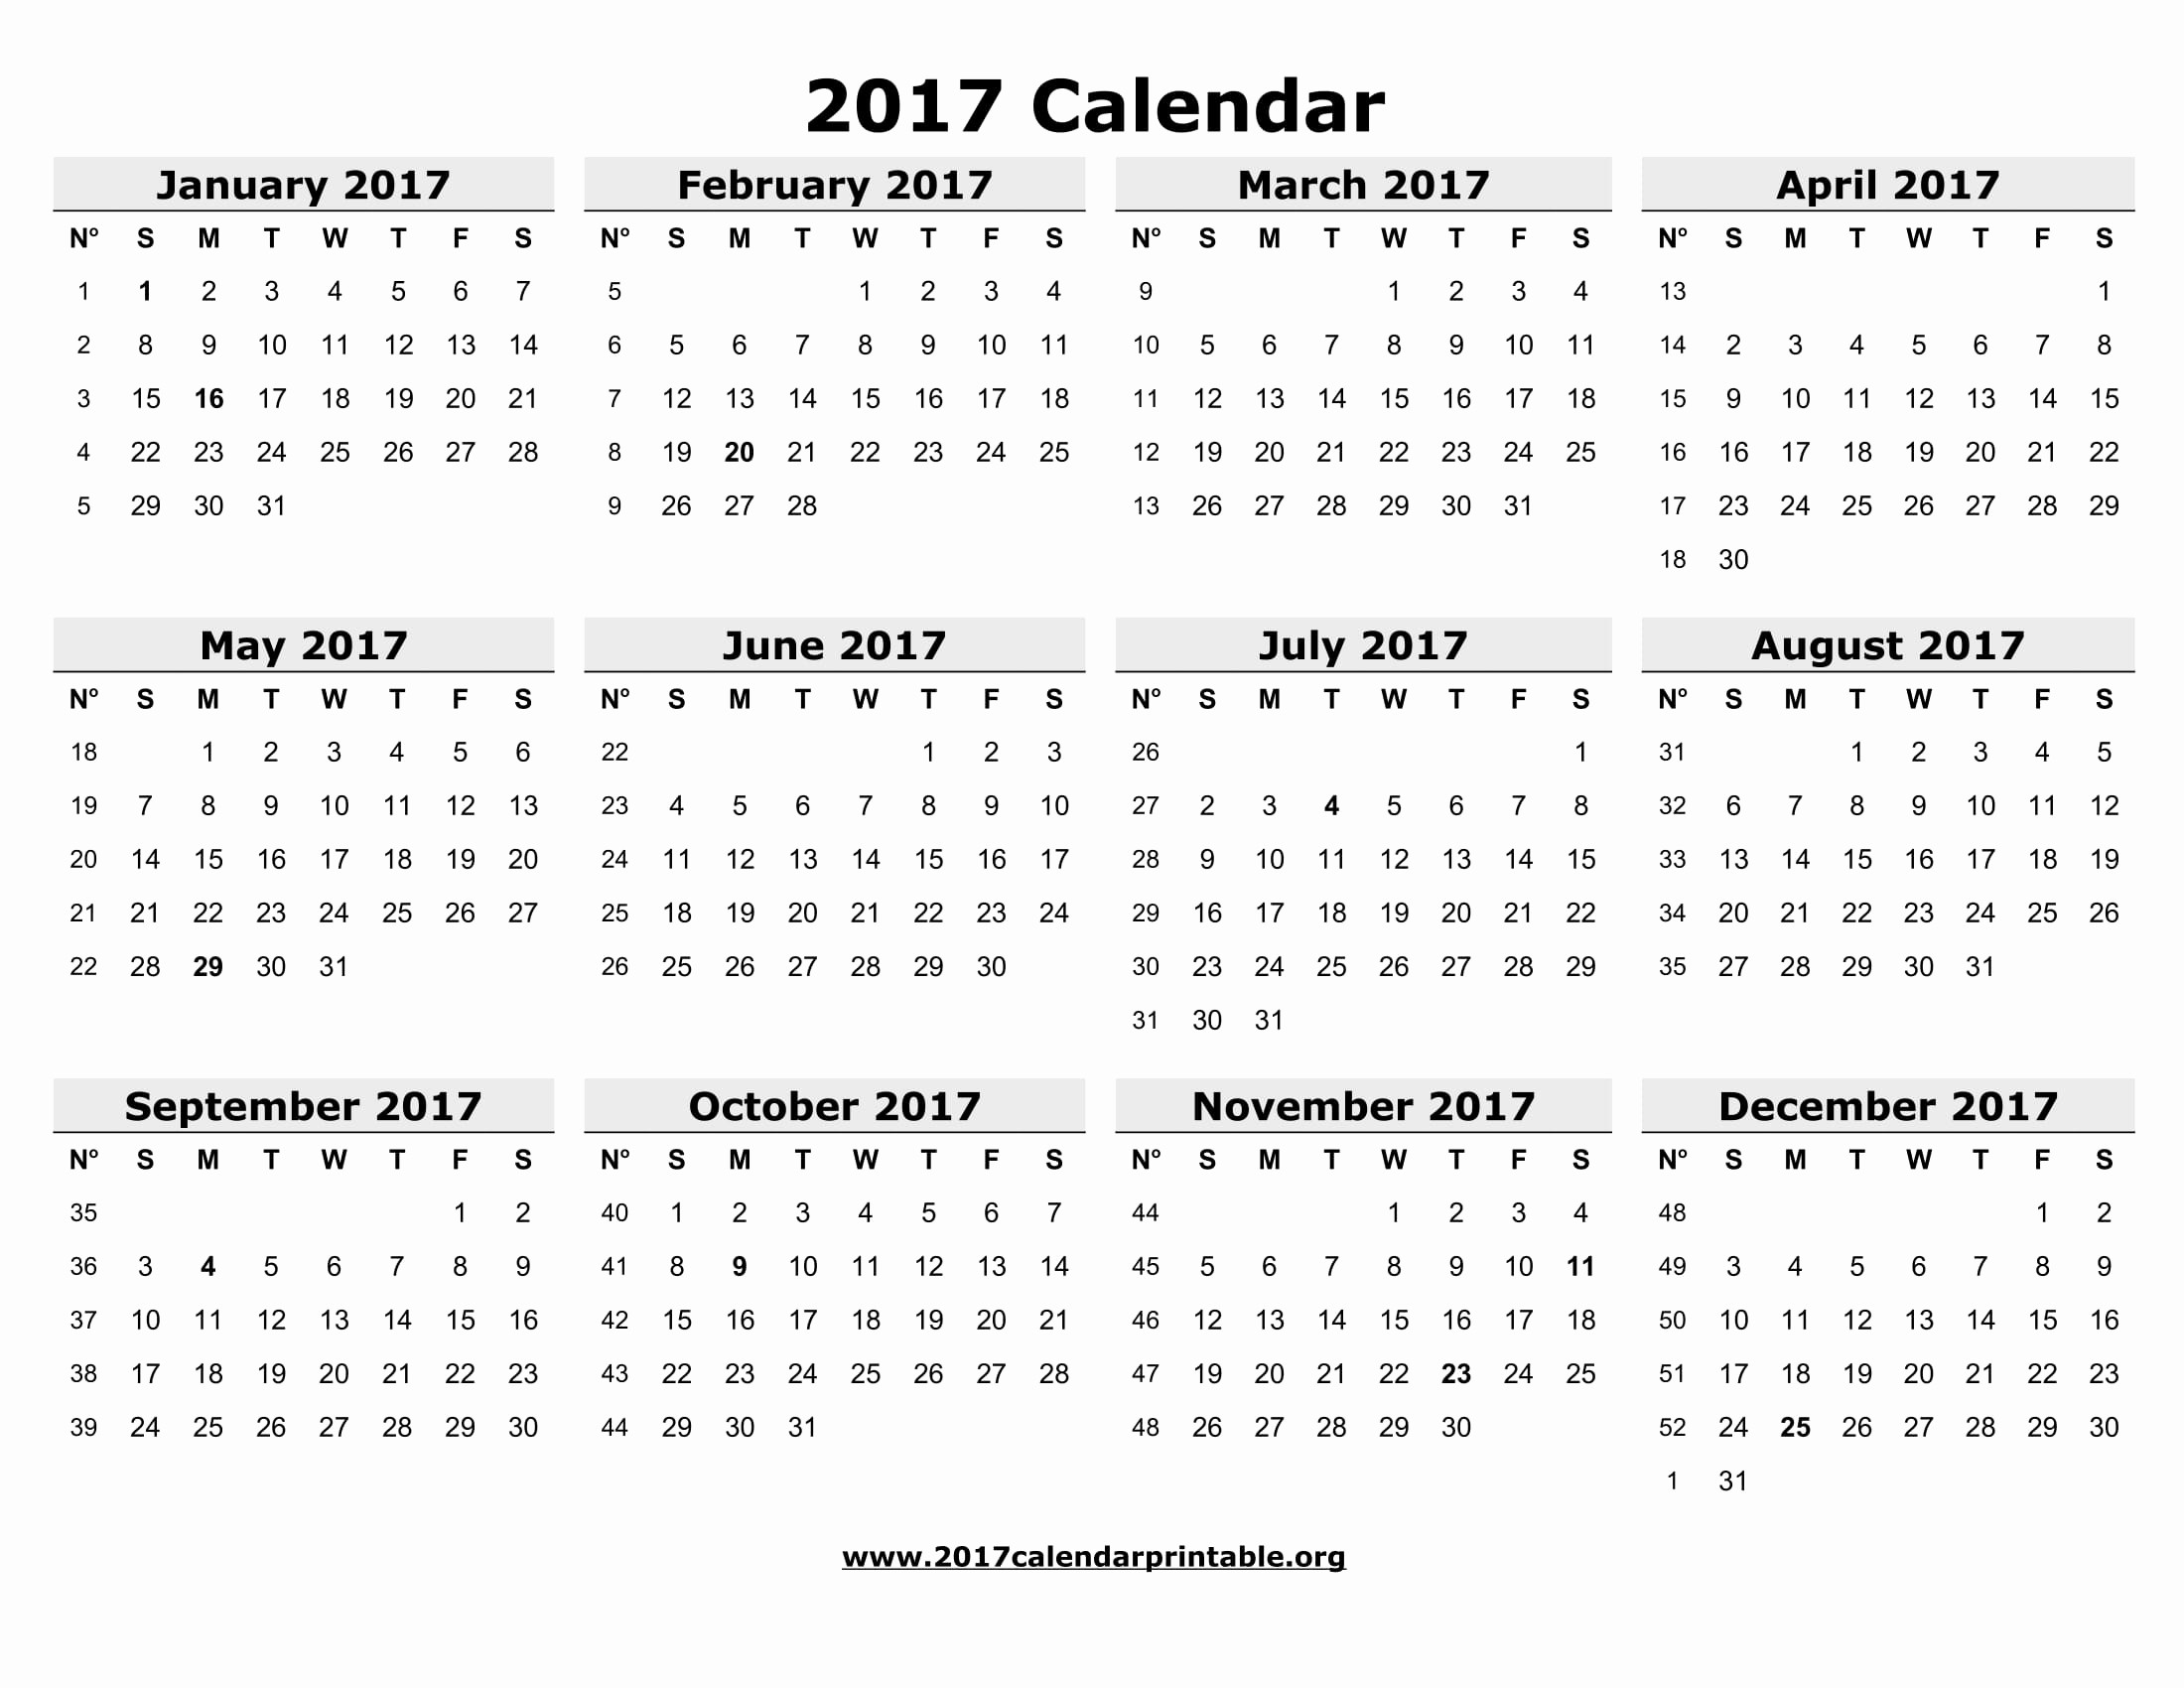 2017 Calendar Month by Month Fresh 12 Month Calendar 2017 Printable